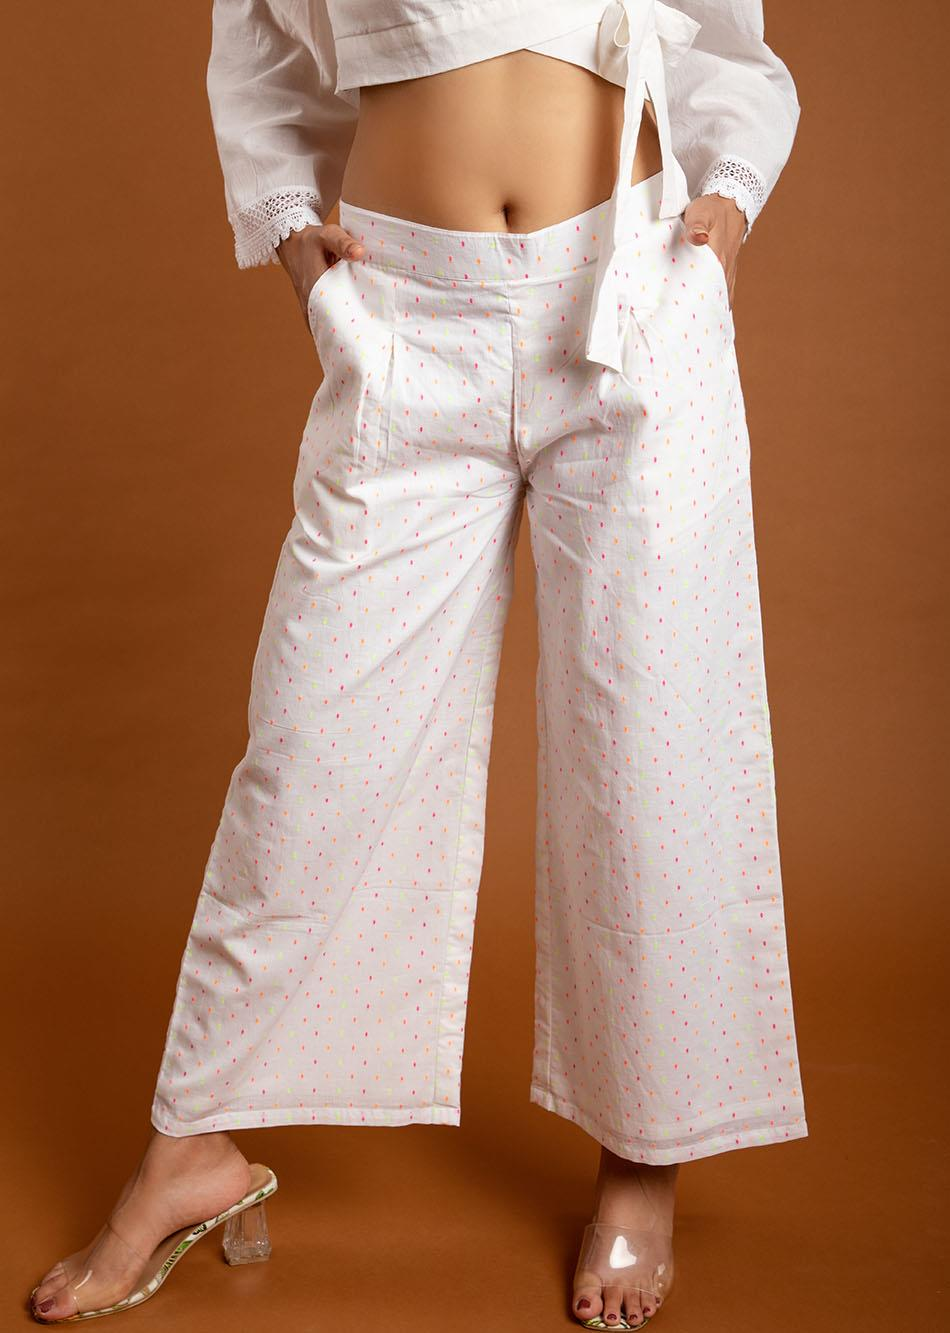 Easy white pants By Jovi Fashion